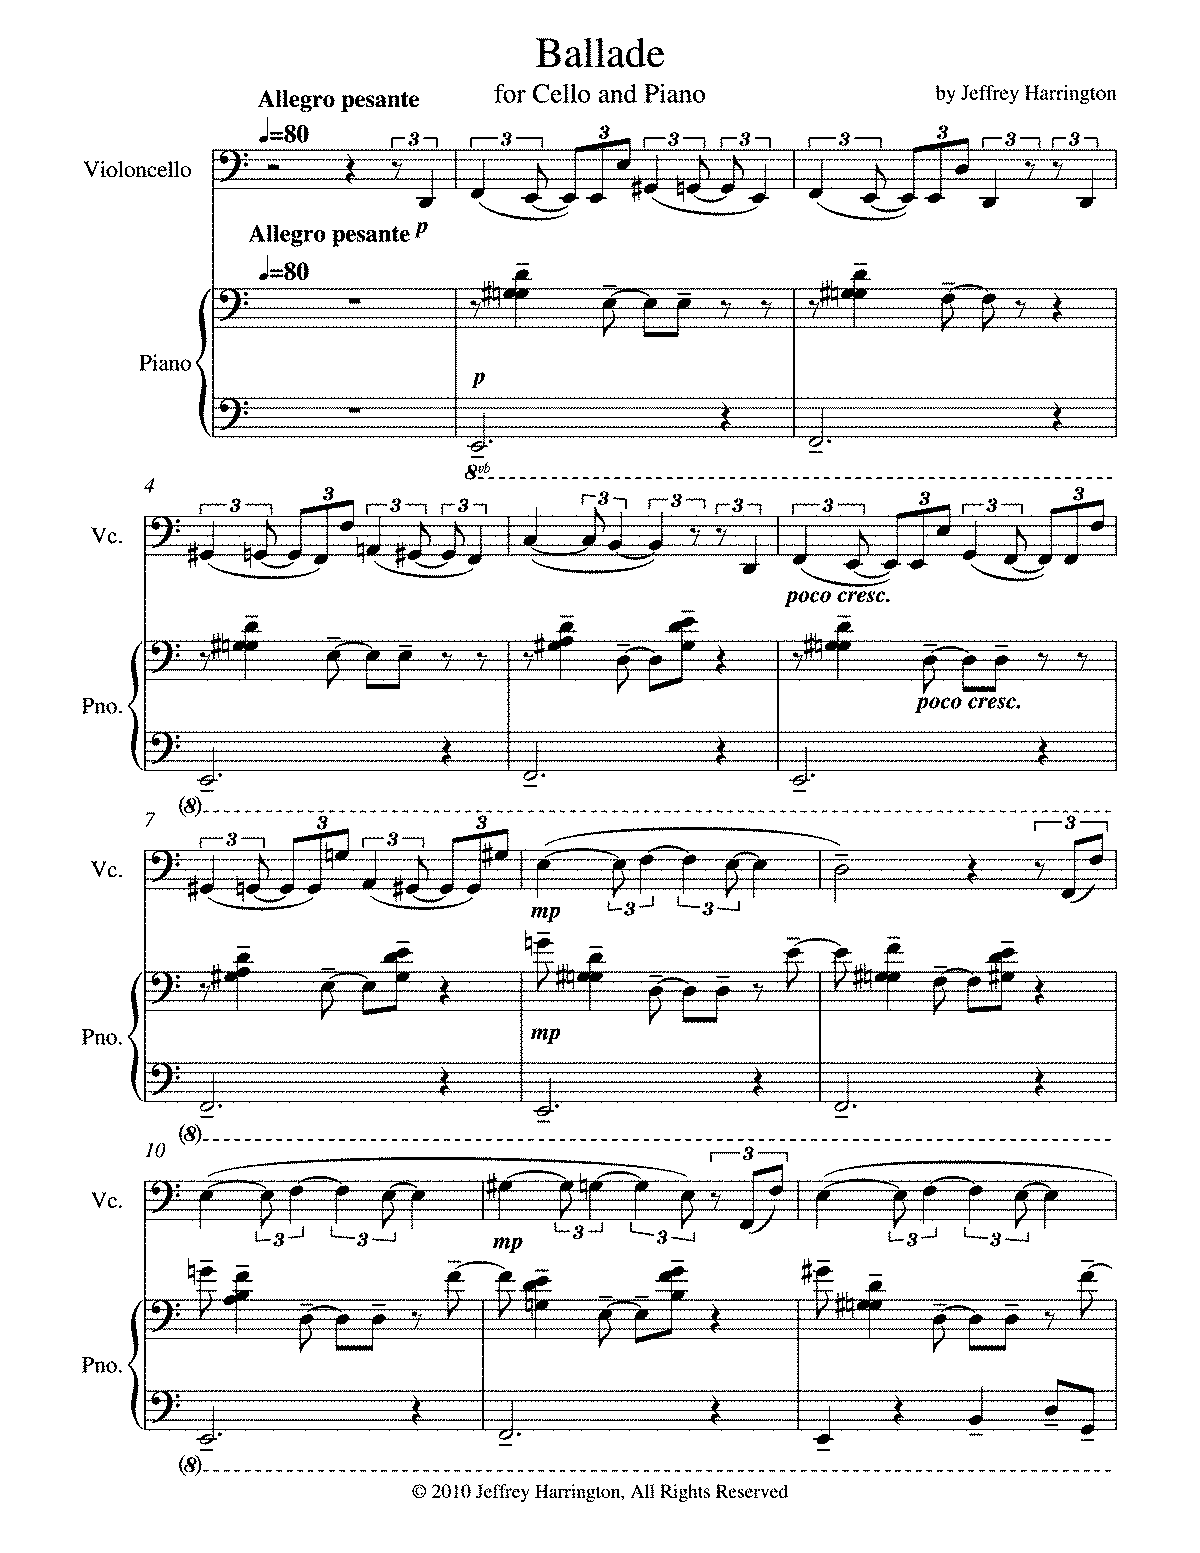 PMLP194288-ballade for cello and piano score.pdf